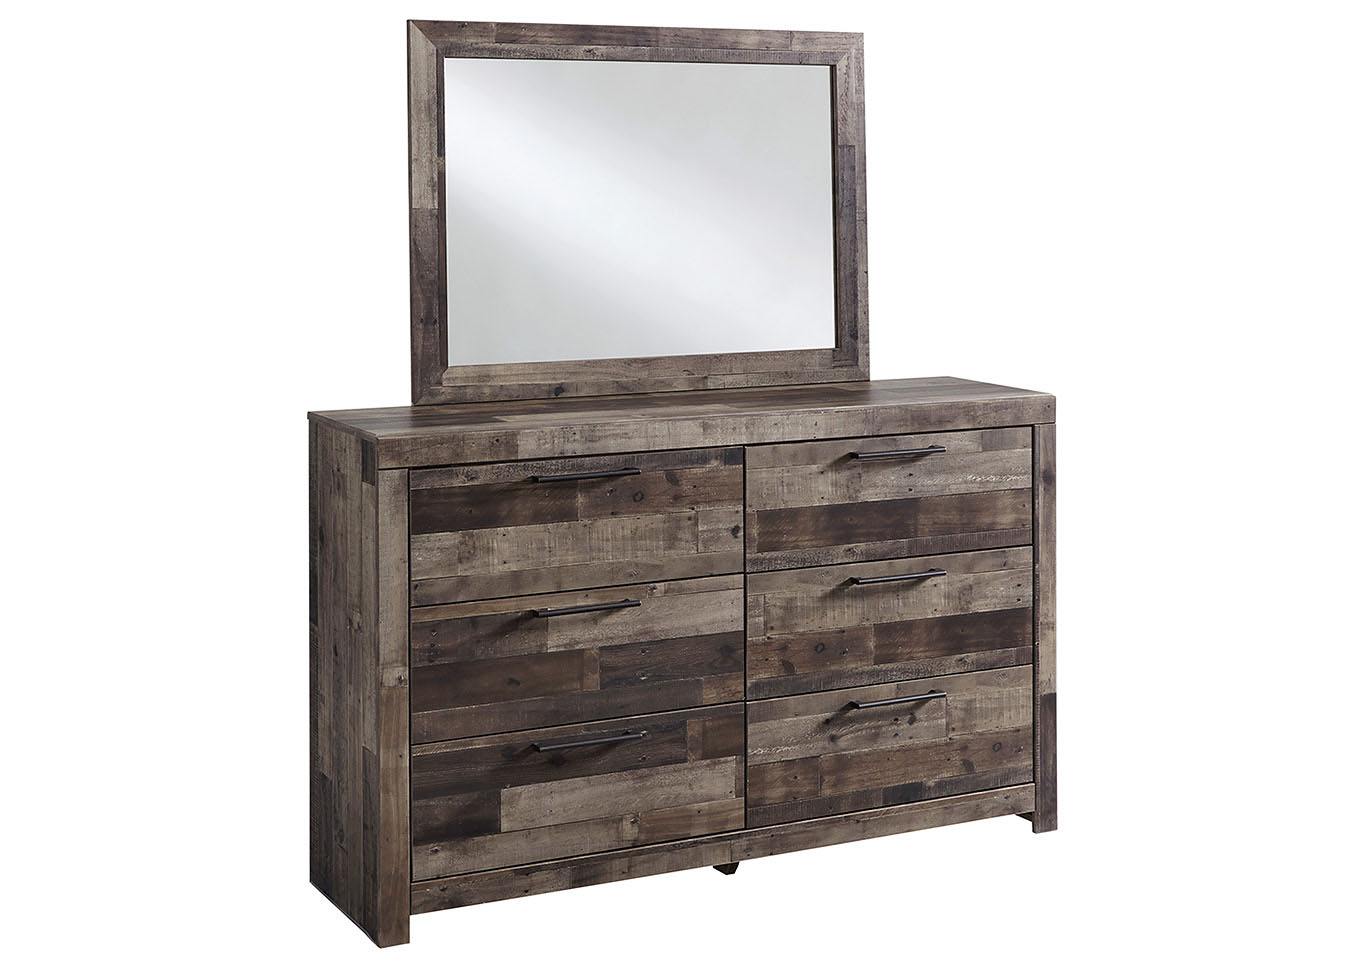 Derekson Bedroom Dresser and Mirror,Benchcraft